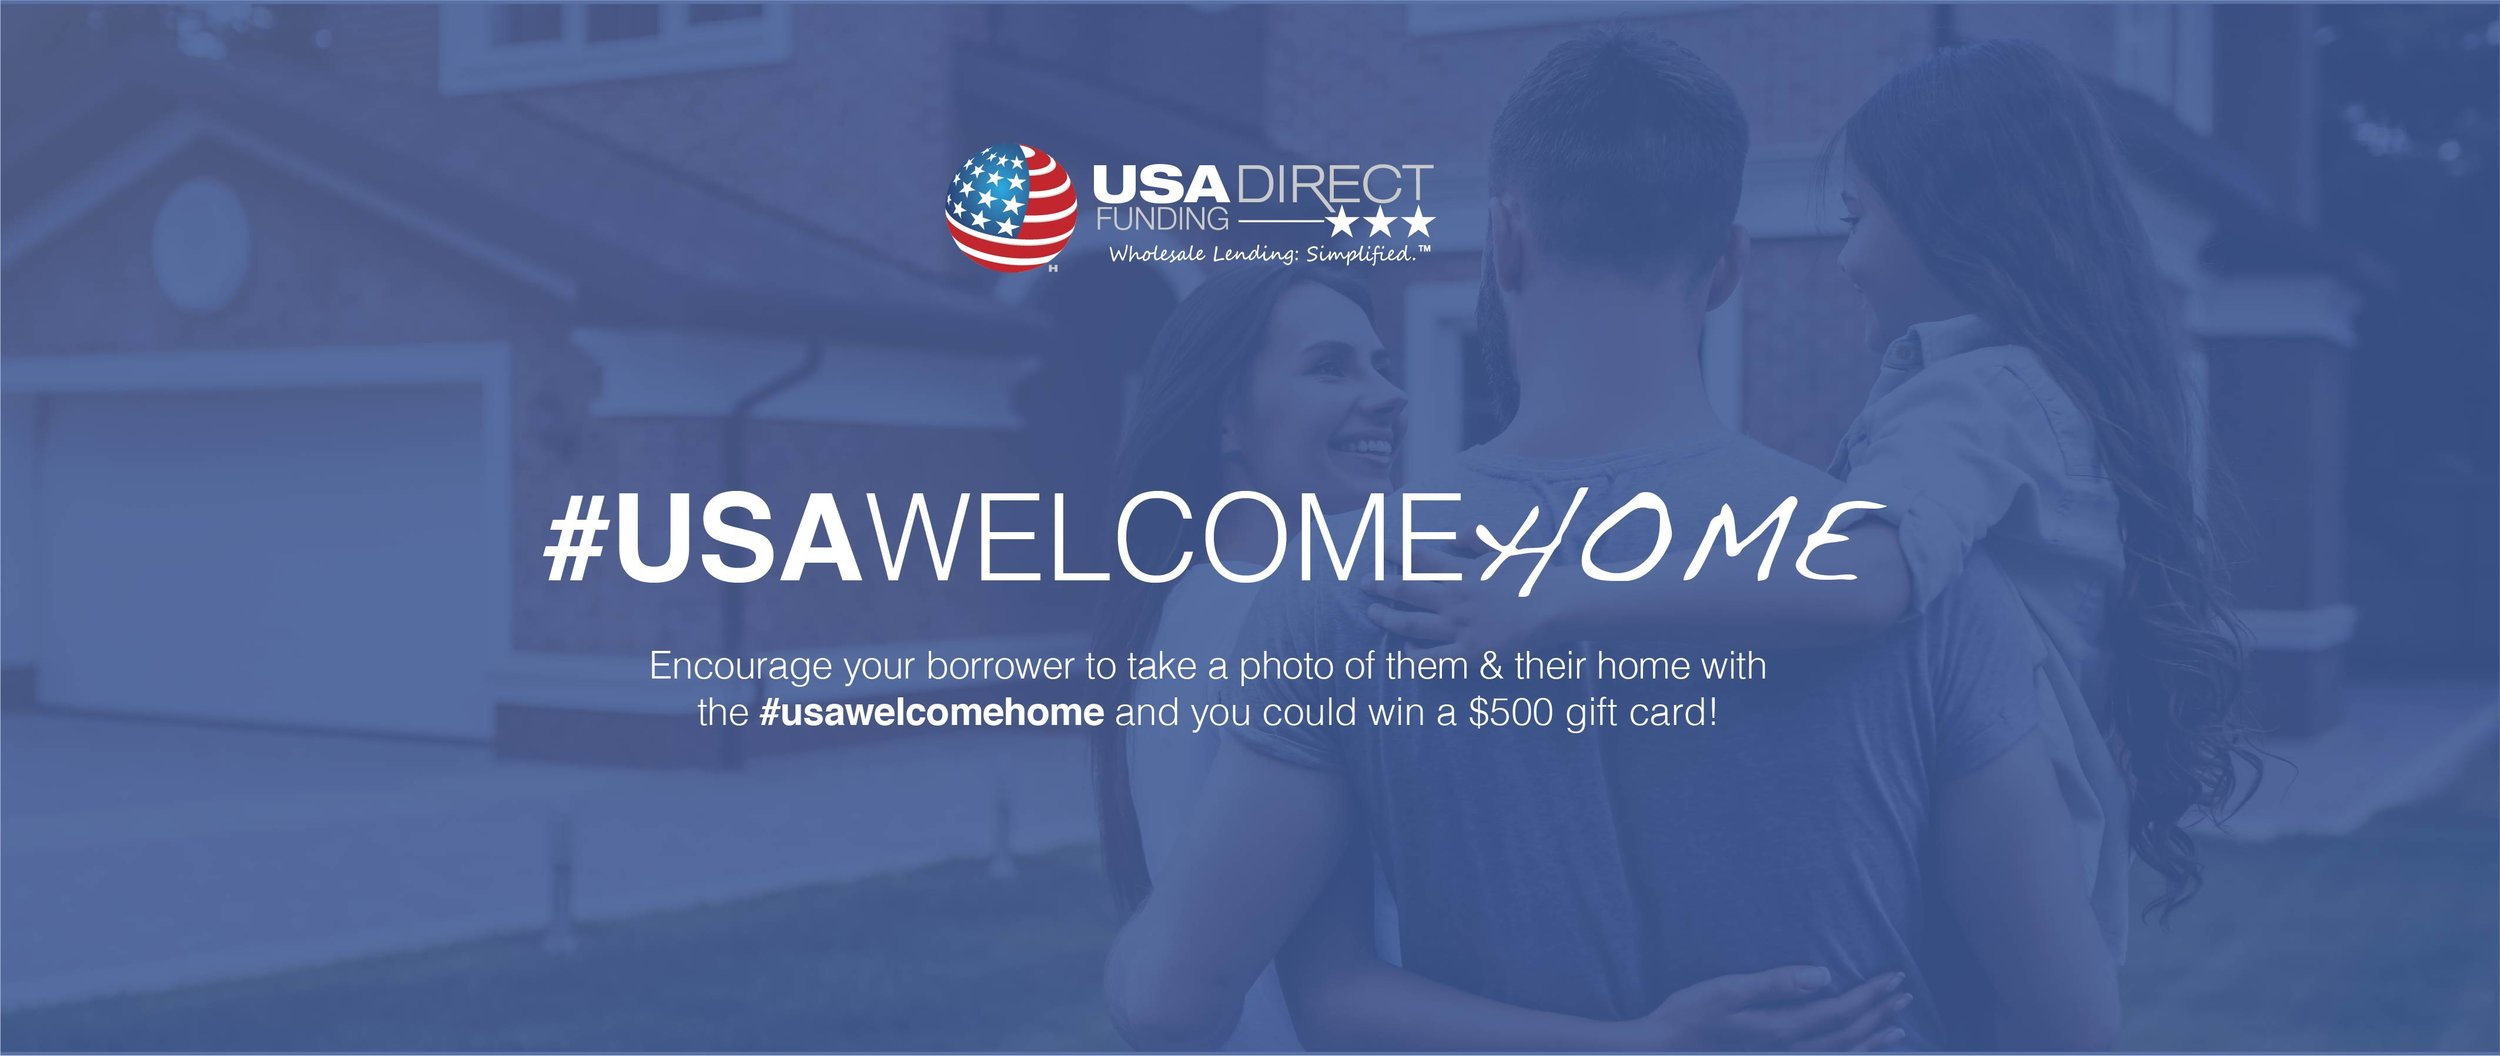 USA_WelcomeHome_campaign-20.jpg